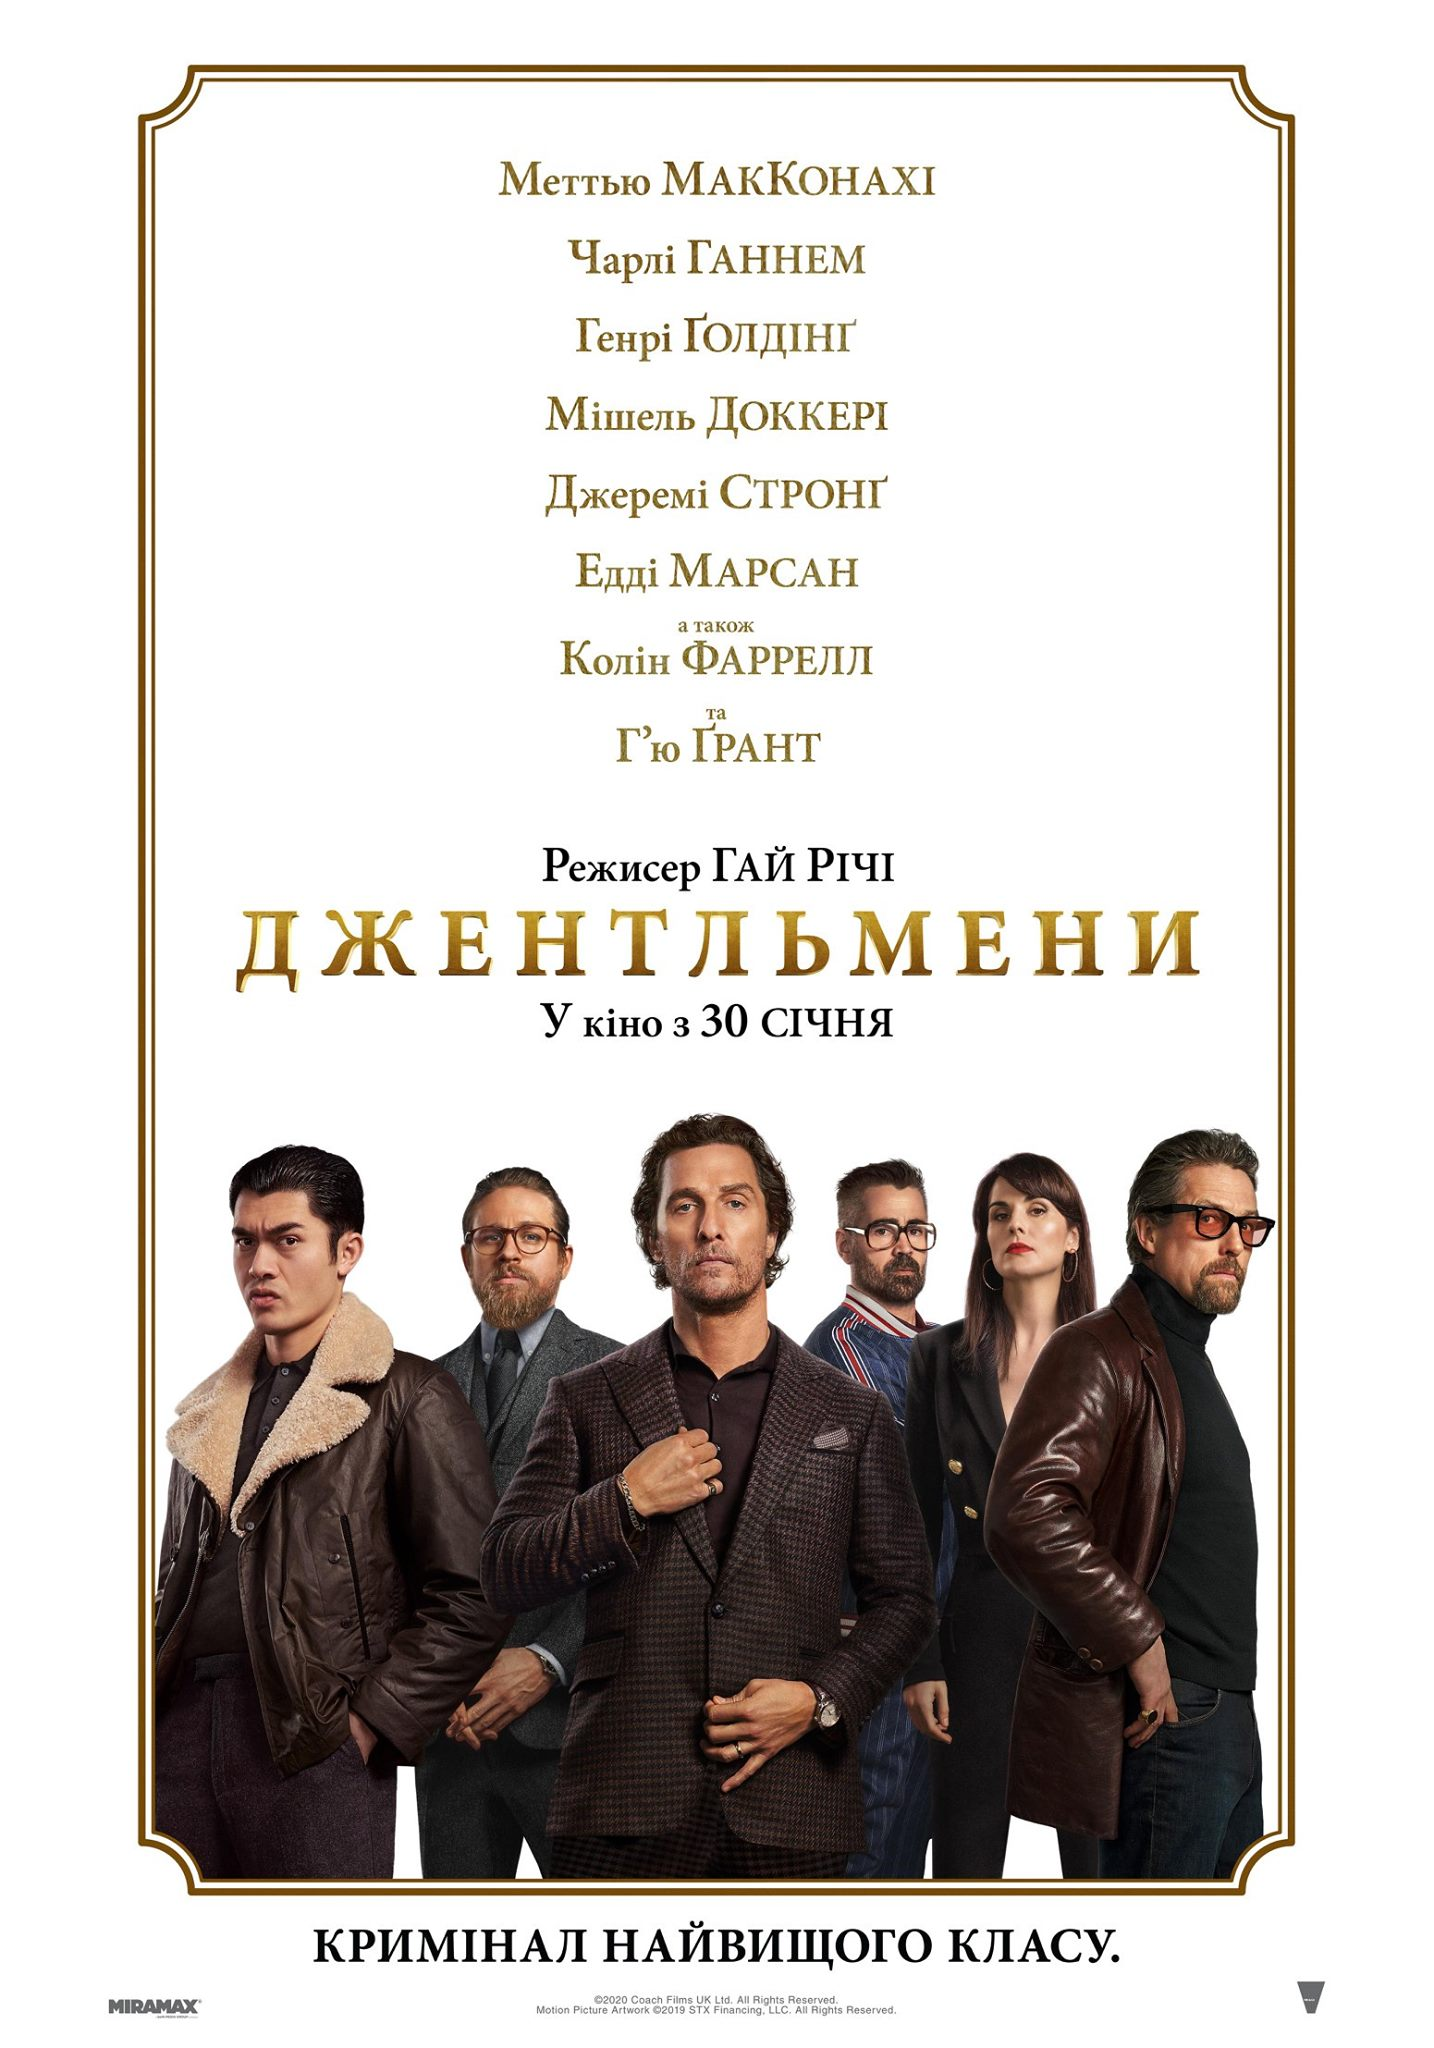 Джентльмени / The Gentlemen (2019) 1080p Ukr/Eng | Sub Ukr/Eng